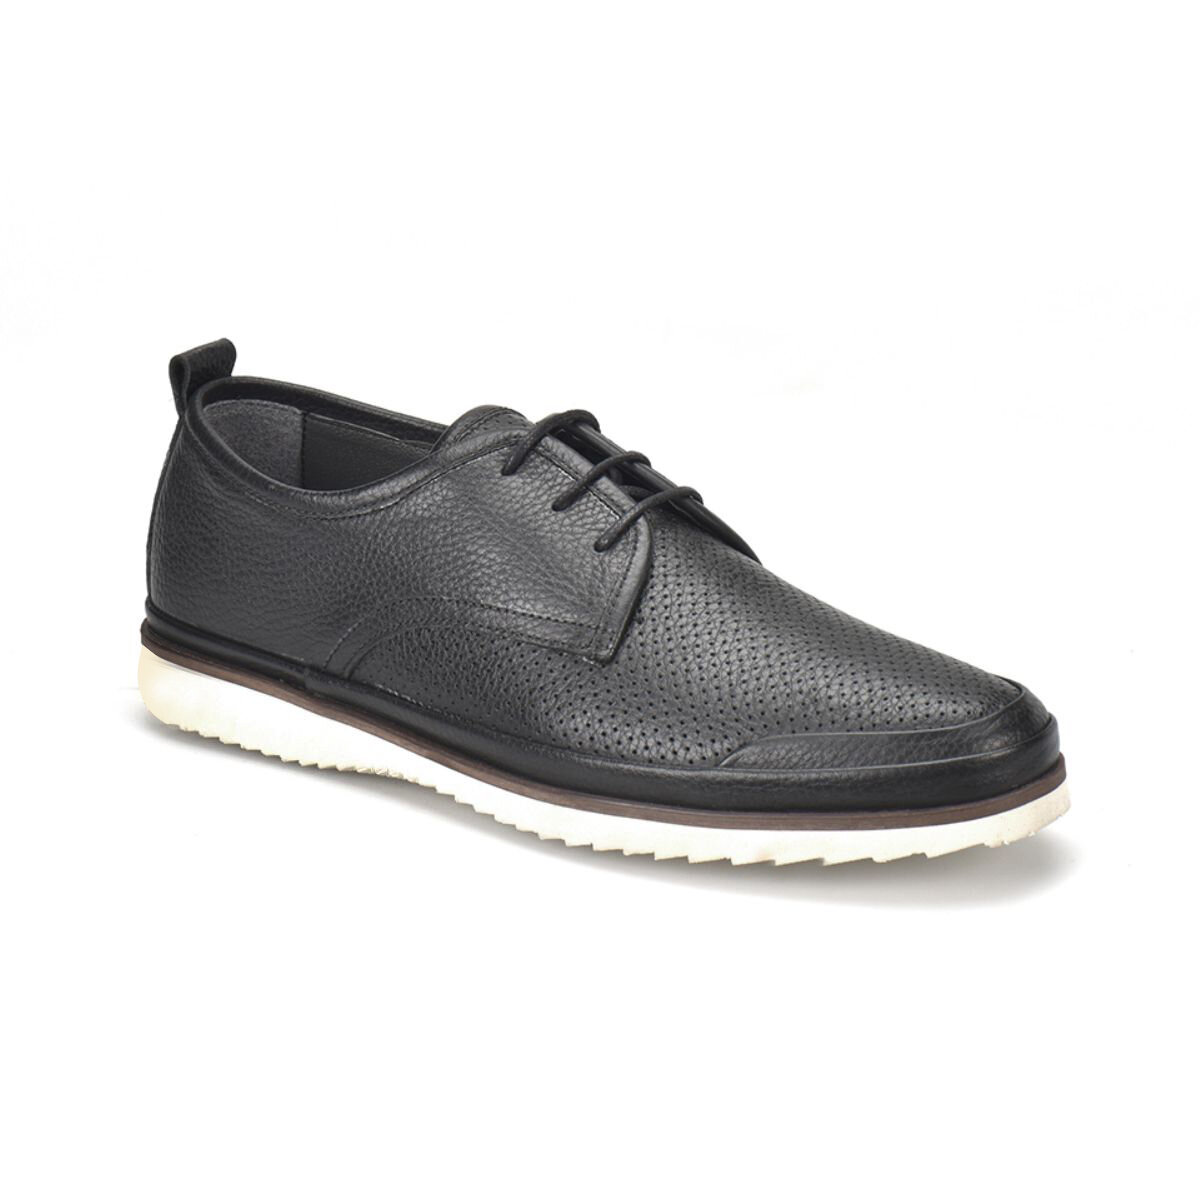 FLO 1791 M 6688 Black Male Modern Shoes Flogart